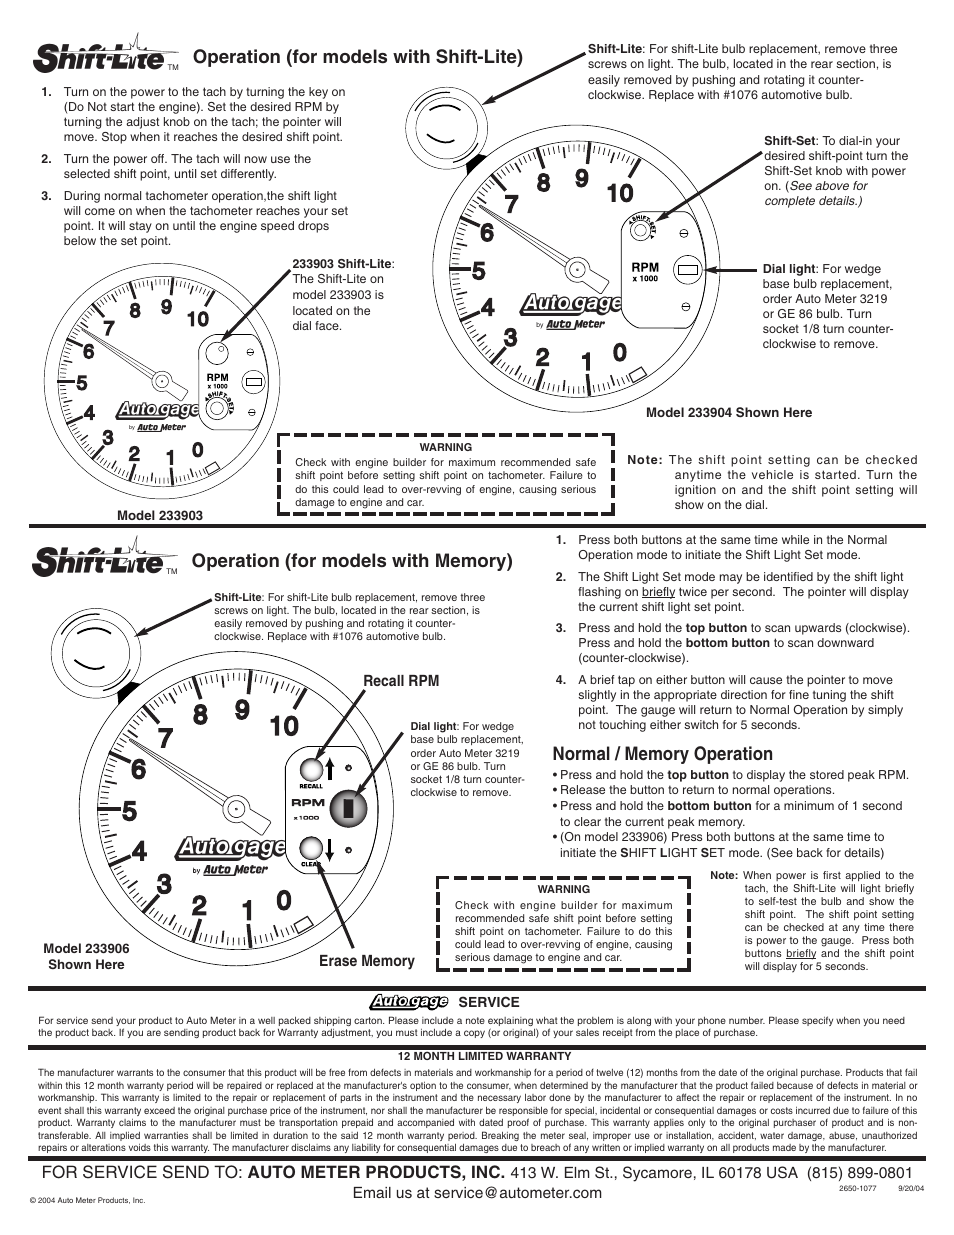 autometer tachometer wiring diagram autometer auto gauge tach wiring solidfonts on autometer tachometer wiring diagram